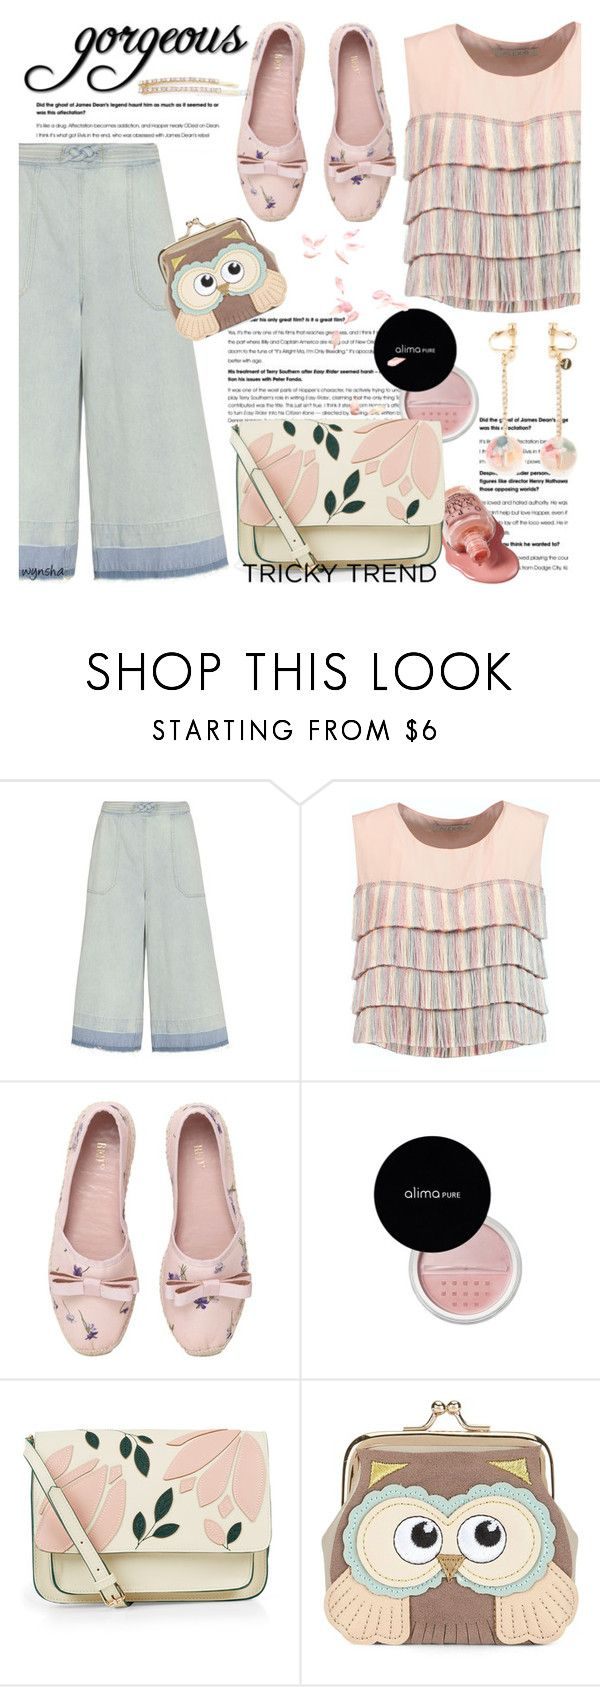 """""""Tricky TREND #1"""" by wynsha ❤ liked on Polyvore featuring Sea, New York, Alexis, RED Valentino, Lauren Conrad, Accessorize, New Look and Tasha"""